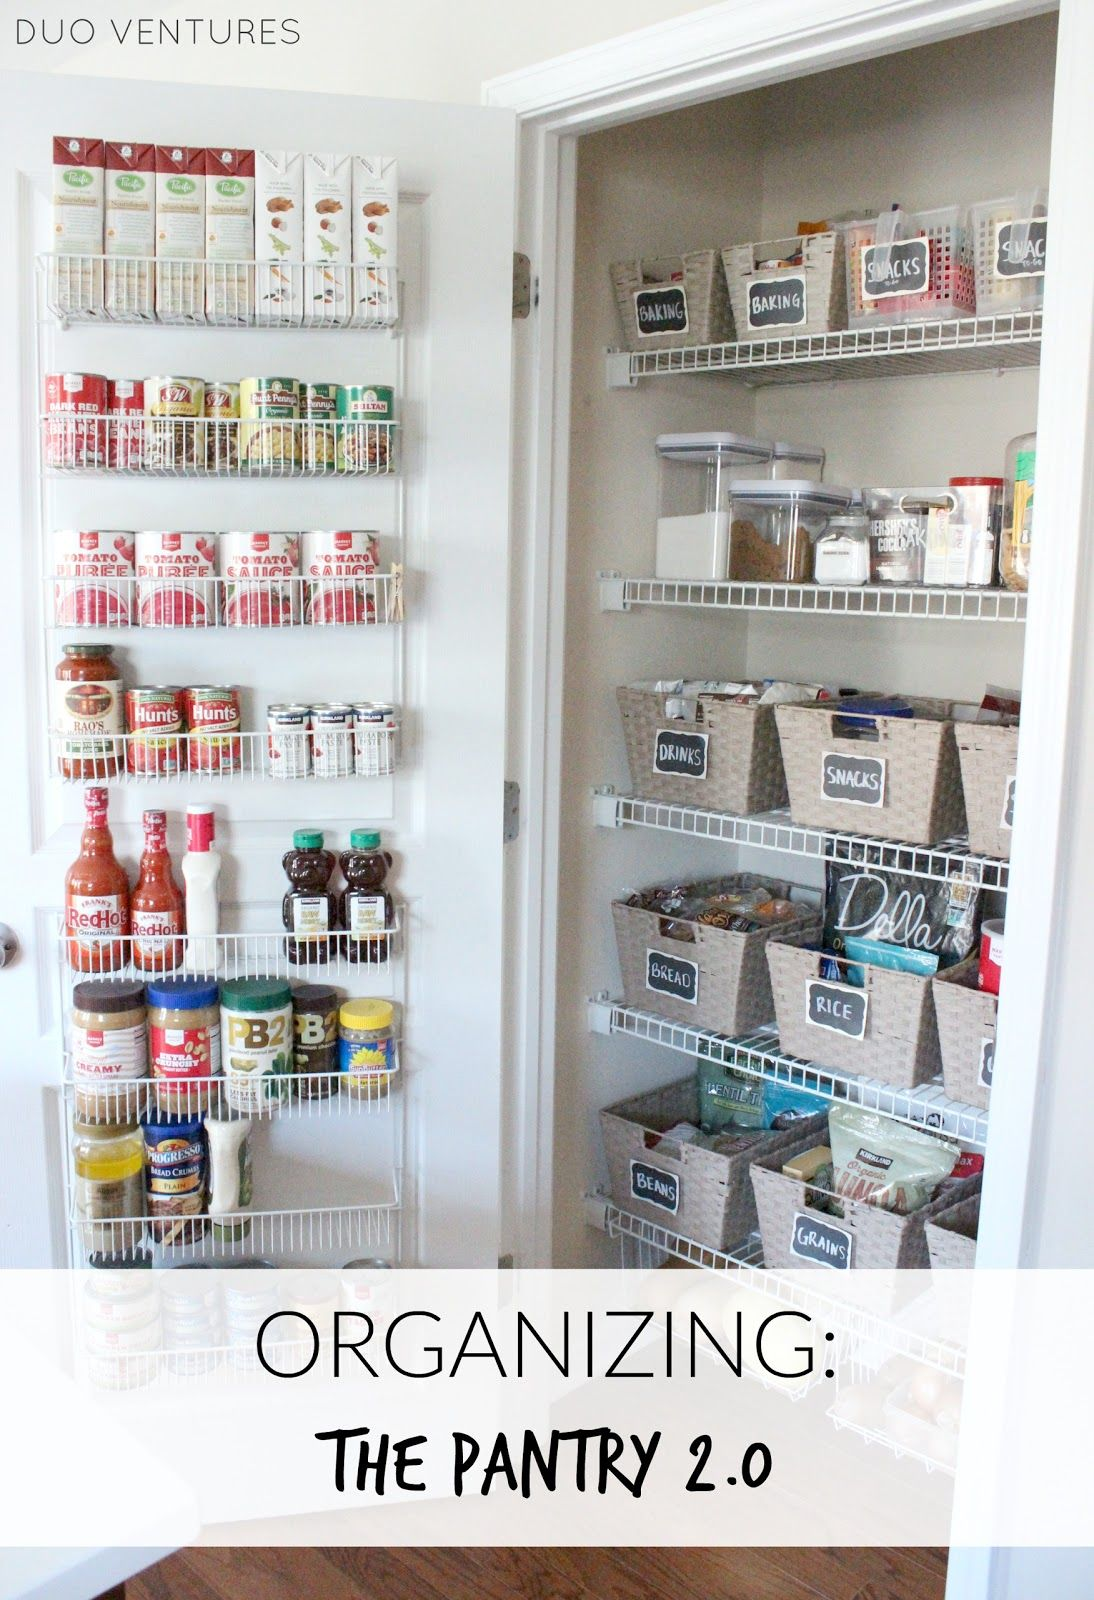 As you may know, we have taken on the task of purging & organizing every room & closet in our house.  Yes, every space (go big or go home...